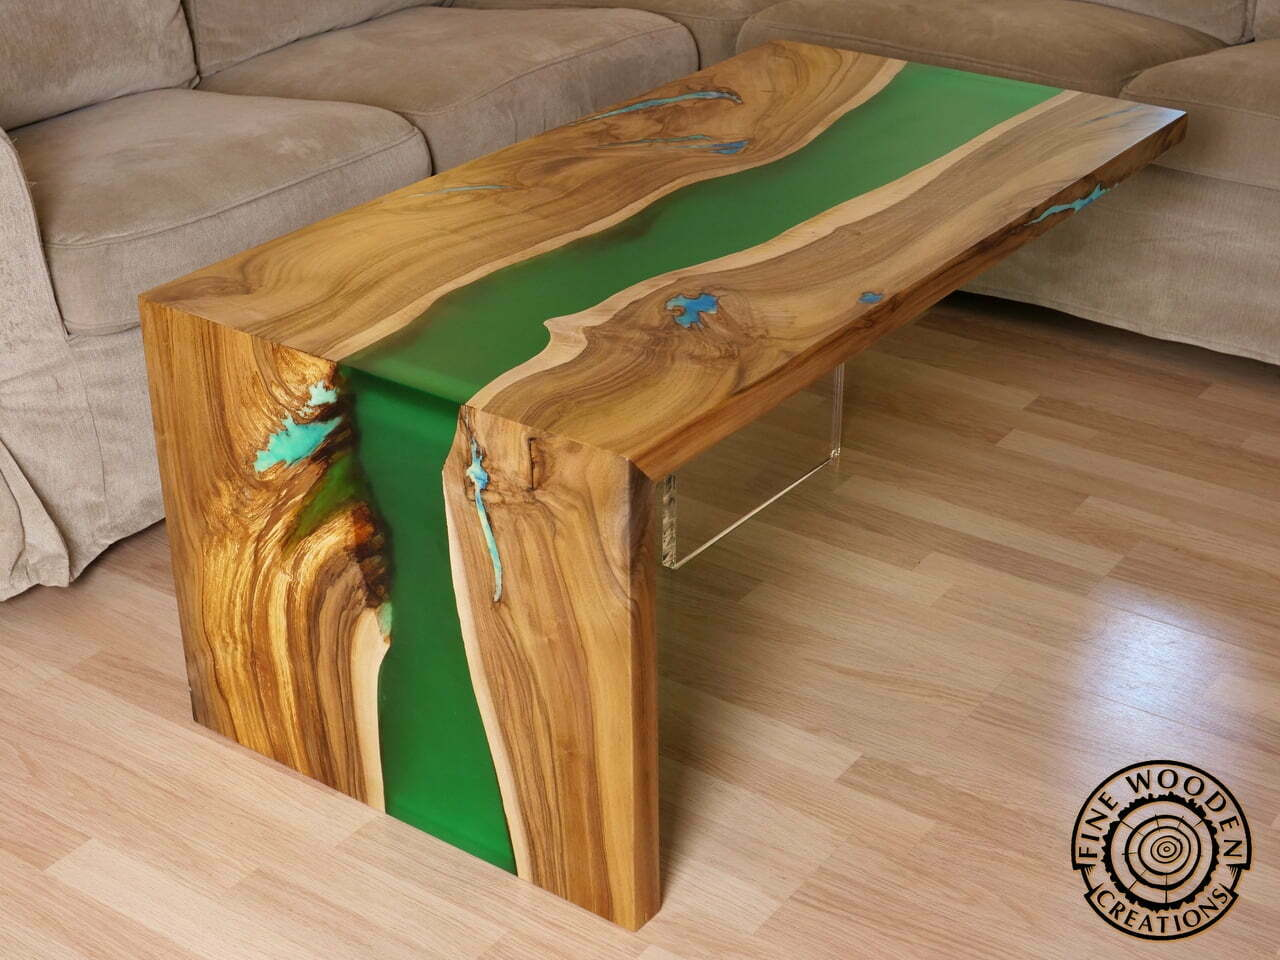 Waterfall Table Made Of Walnut With Green River Like Resin Part Flowing  Through The Table Top And Falling Down Along One Of The Legs.